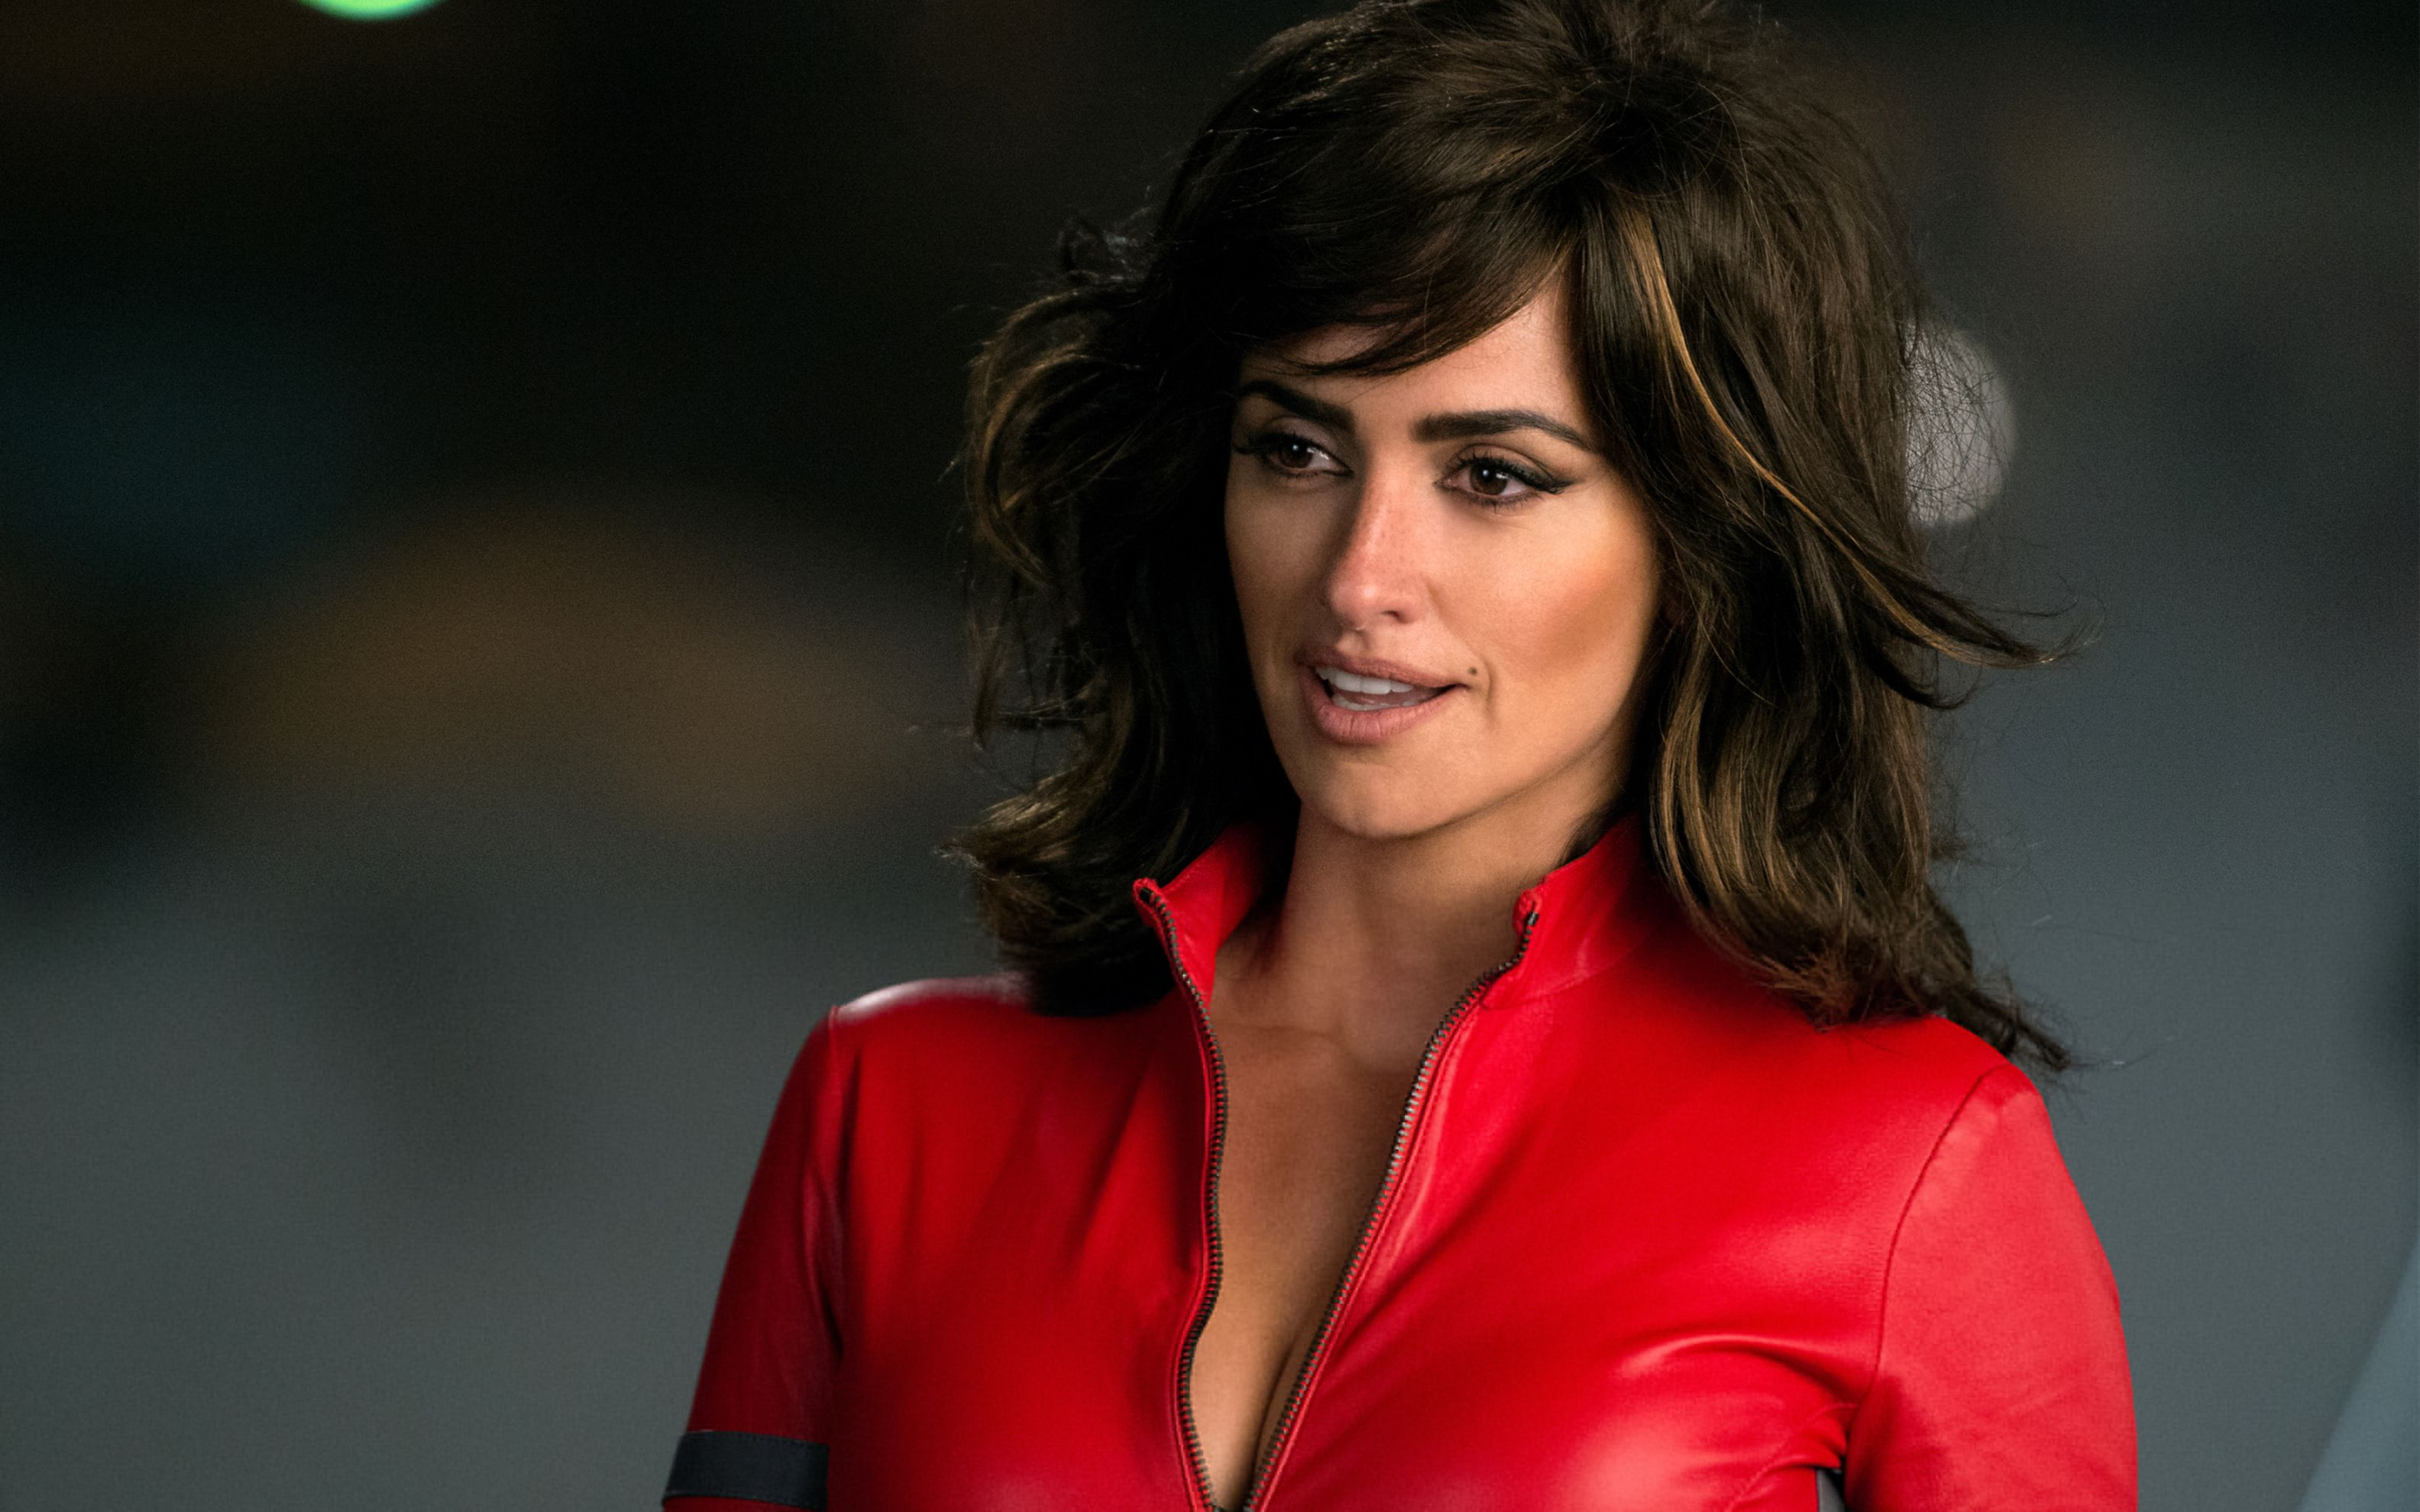 Download free HD Penelope Cruz Valentina Valencia Wide Wallpaper, image